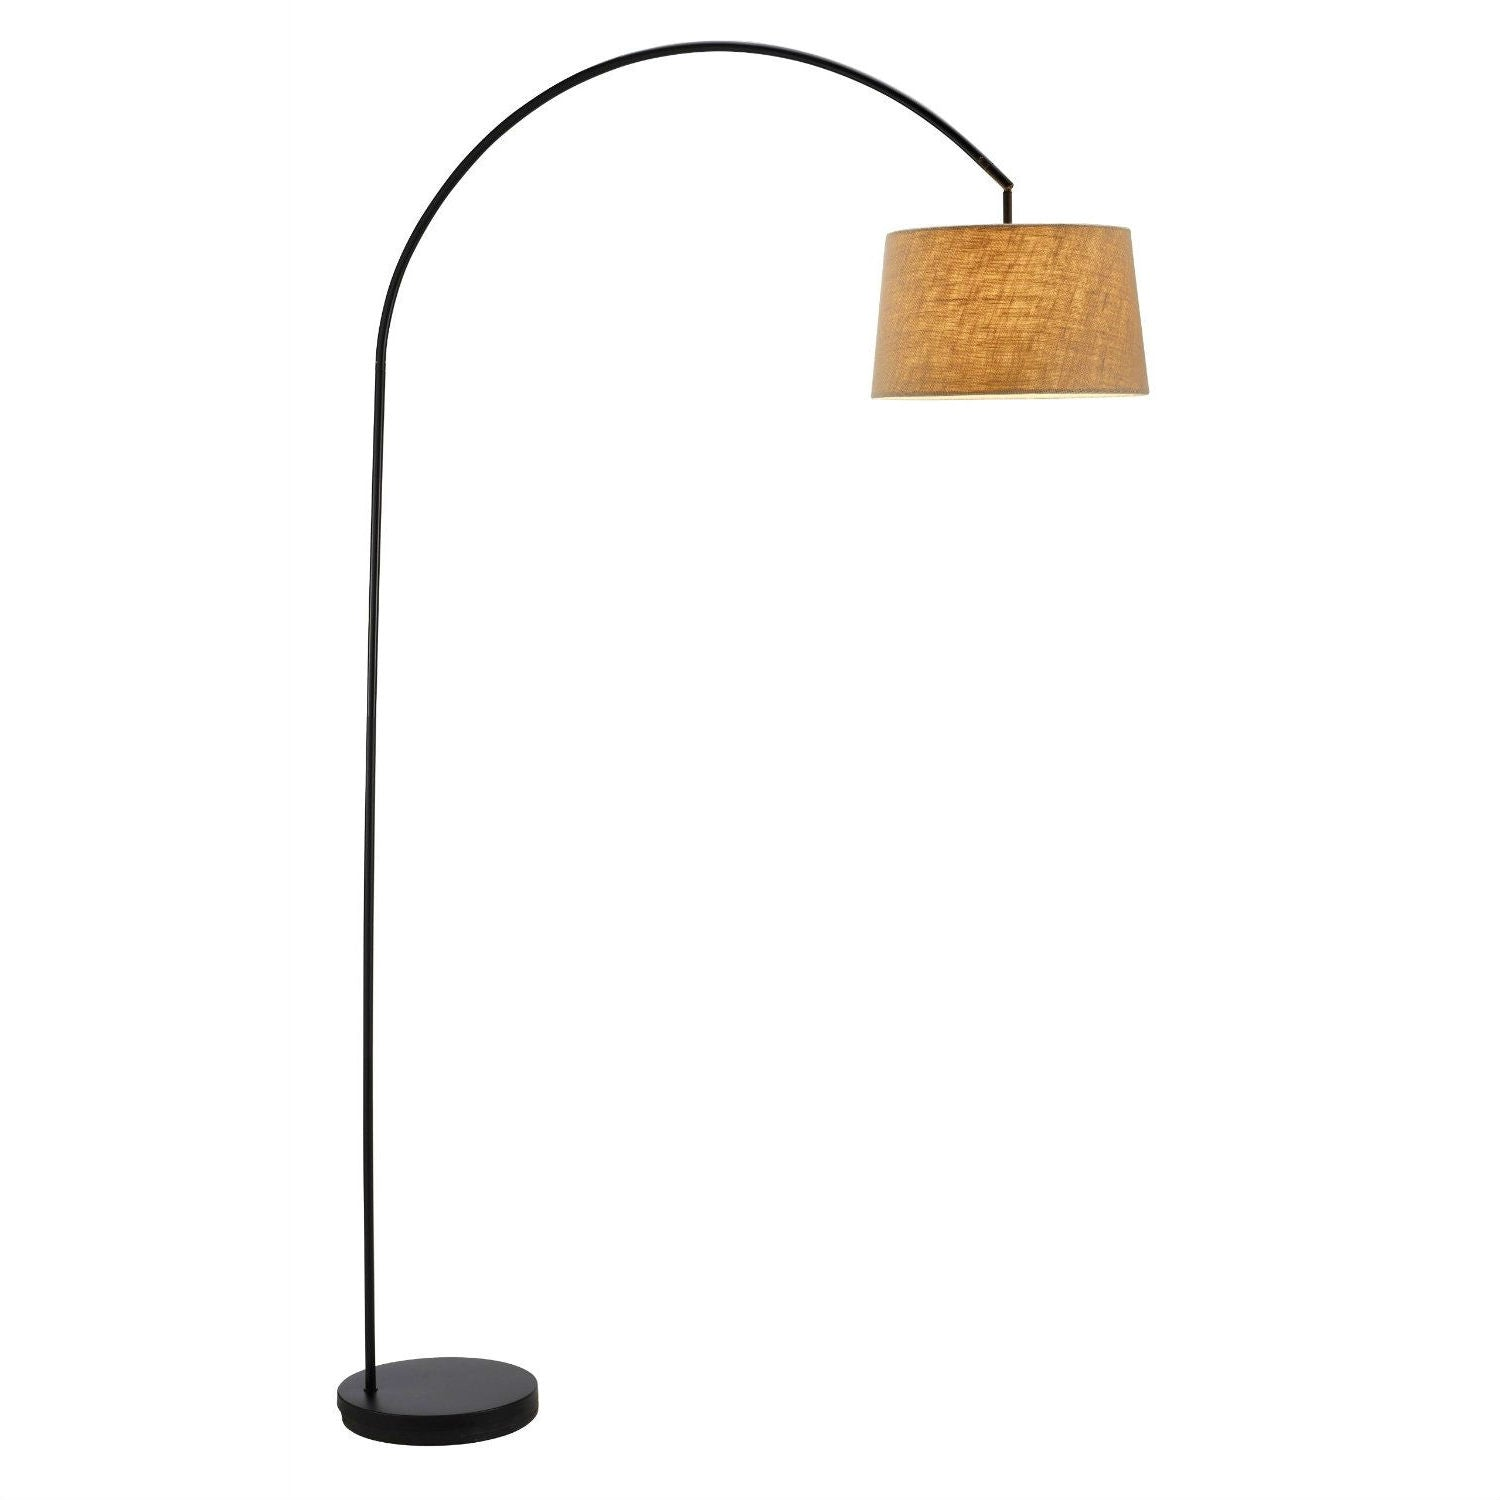 index by arc floor arch download kai lamp image hive laki